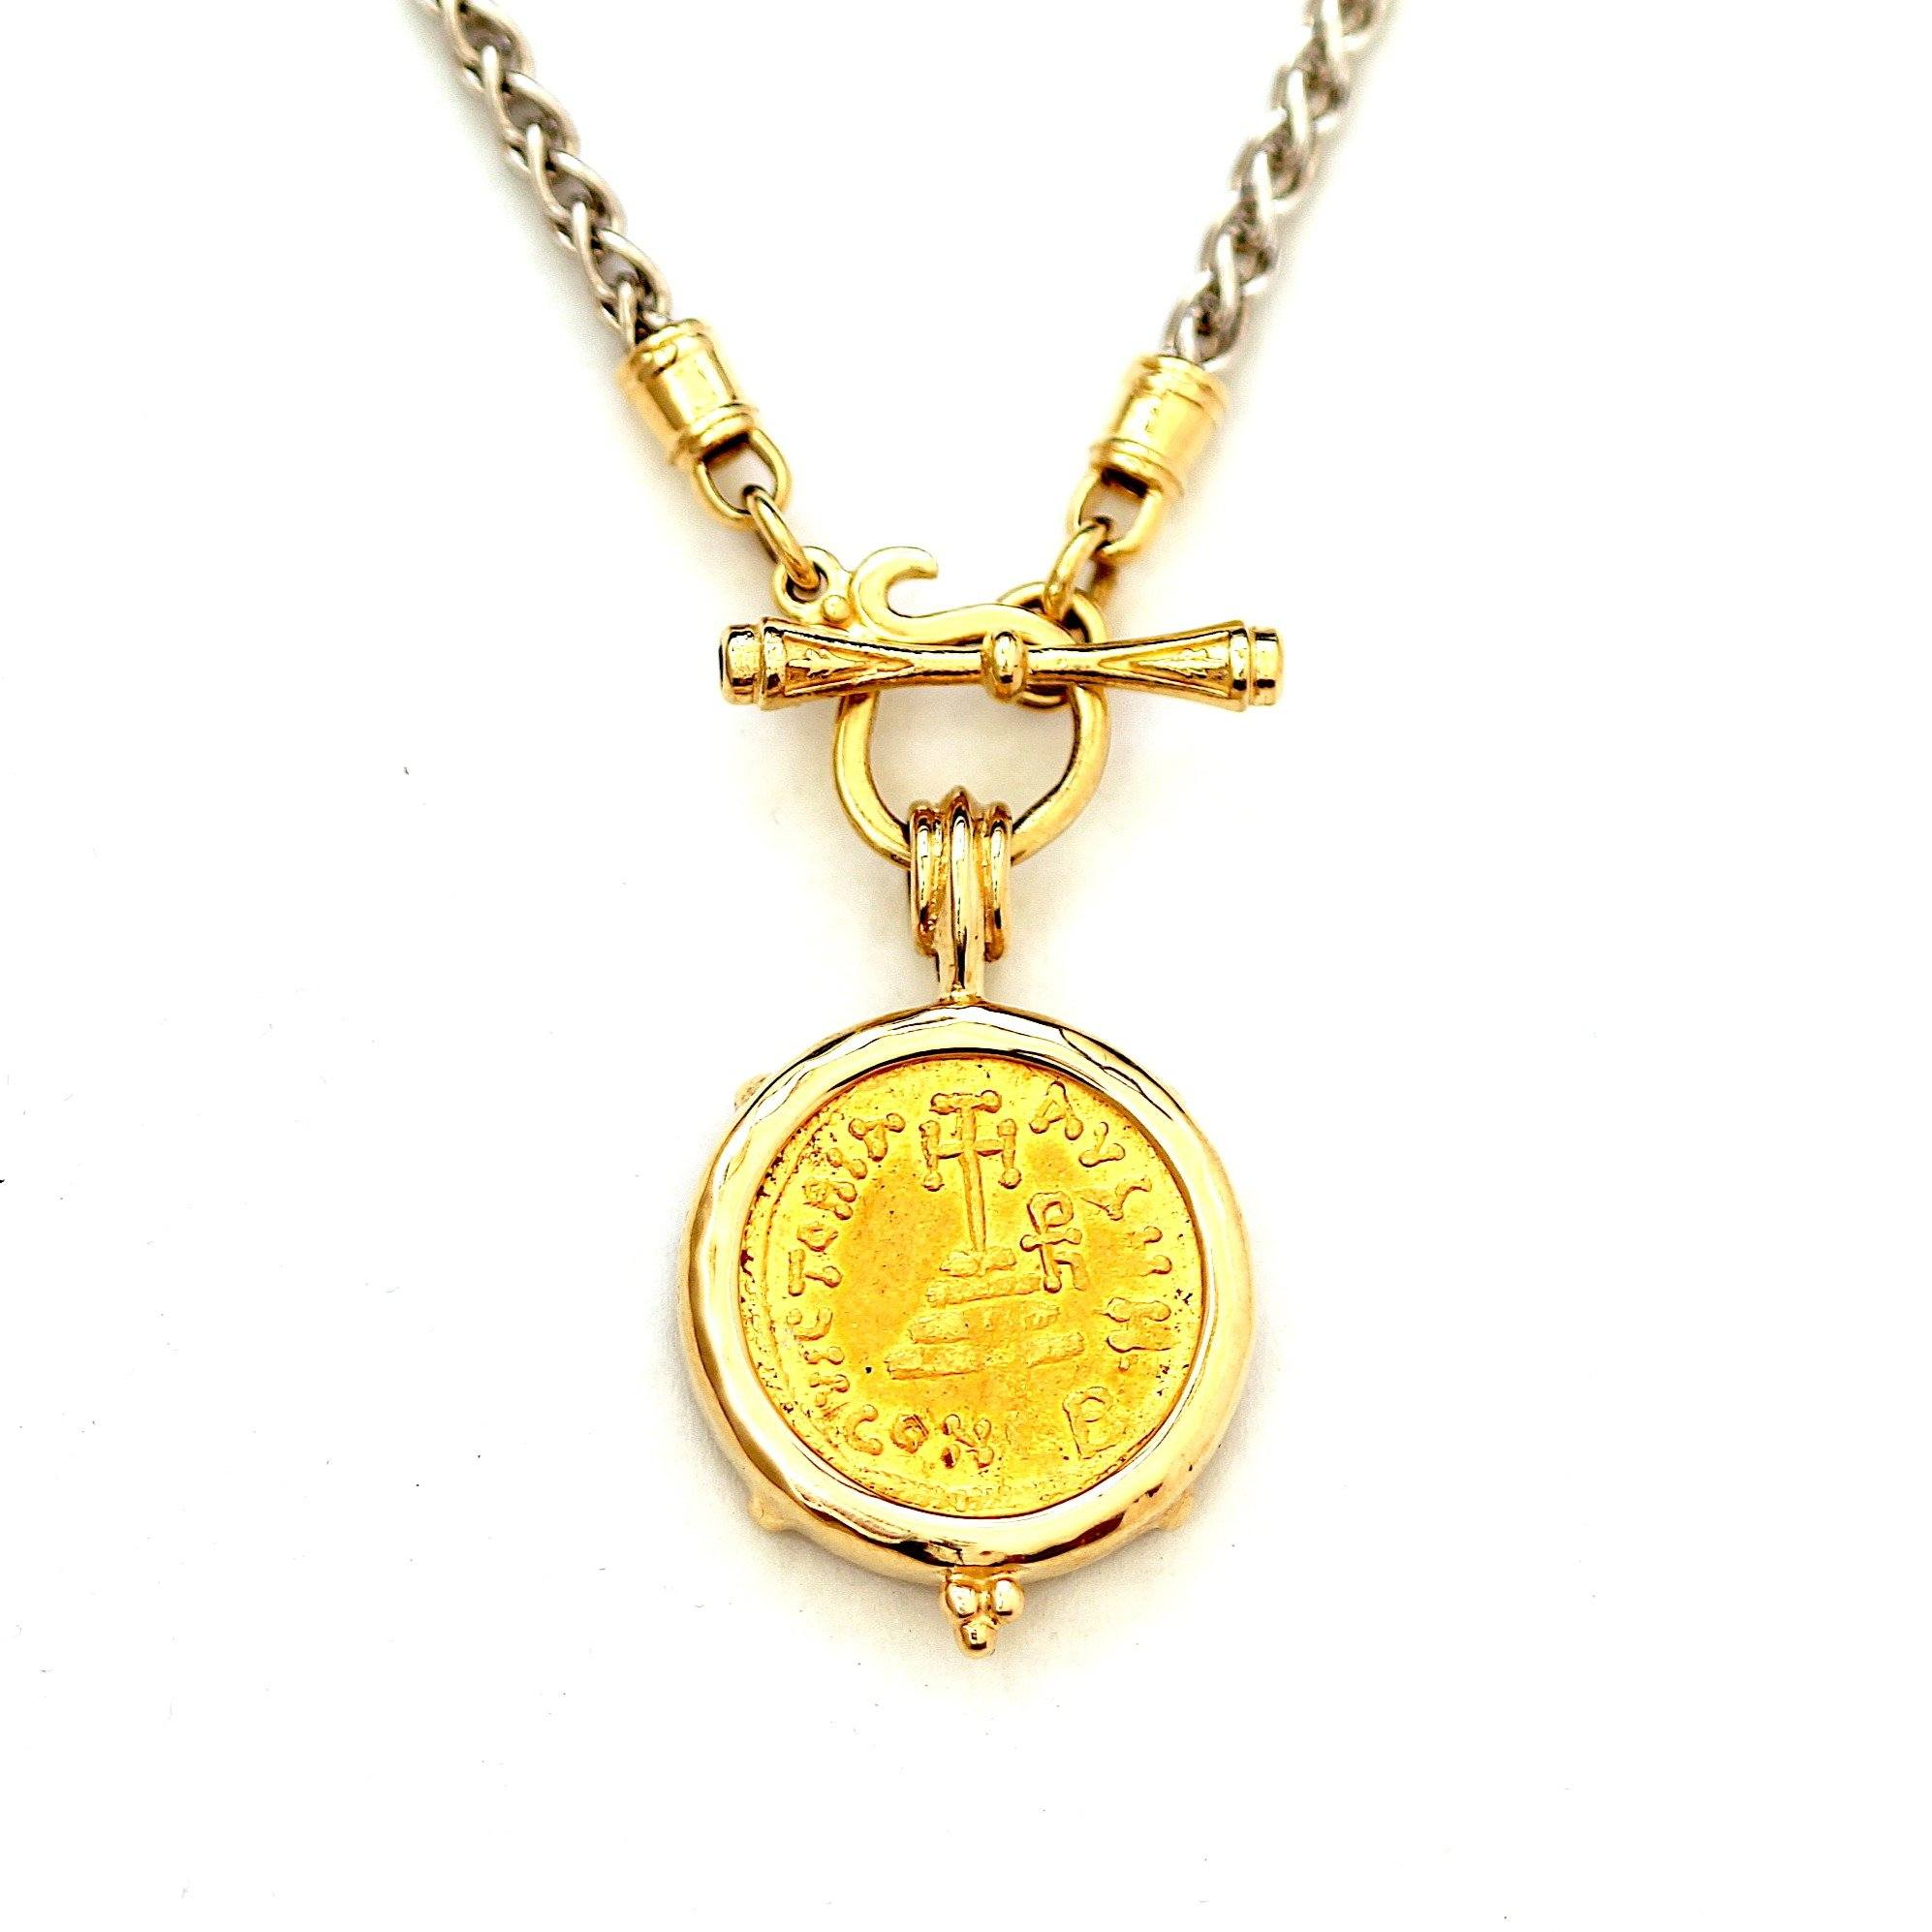 14K Gold Pendant, Byzantine Gold Coin, Certificate ID13121 - Erez Ancient Coin Jewelry, ancient coin jewelry, men jewelry, genuine ancient coins, made in the US